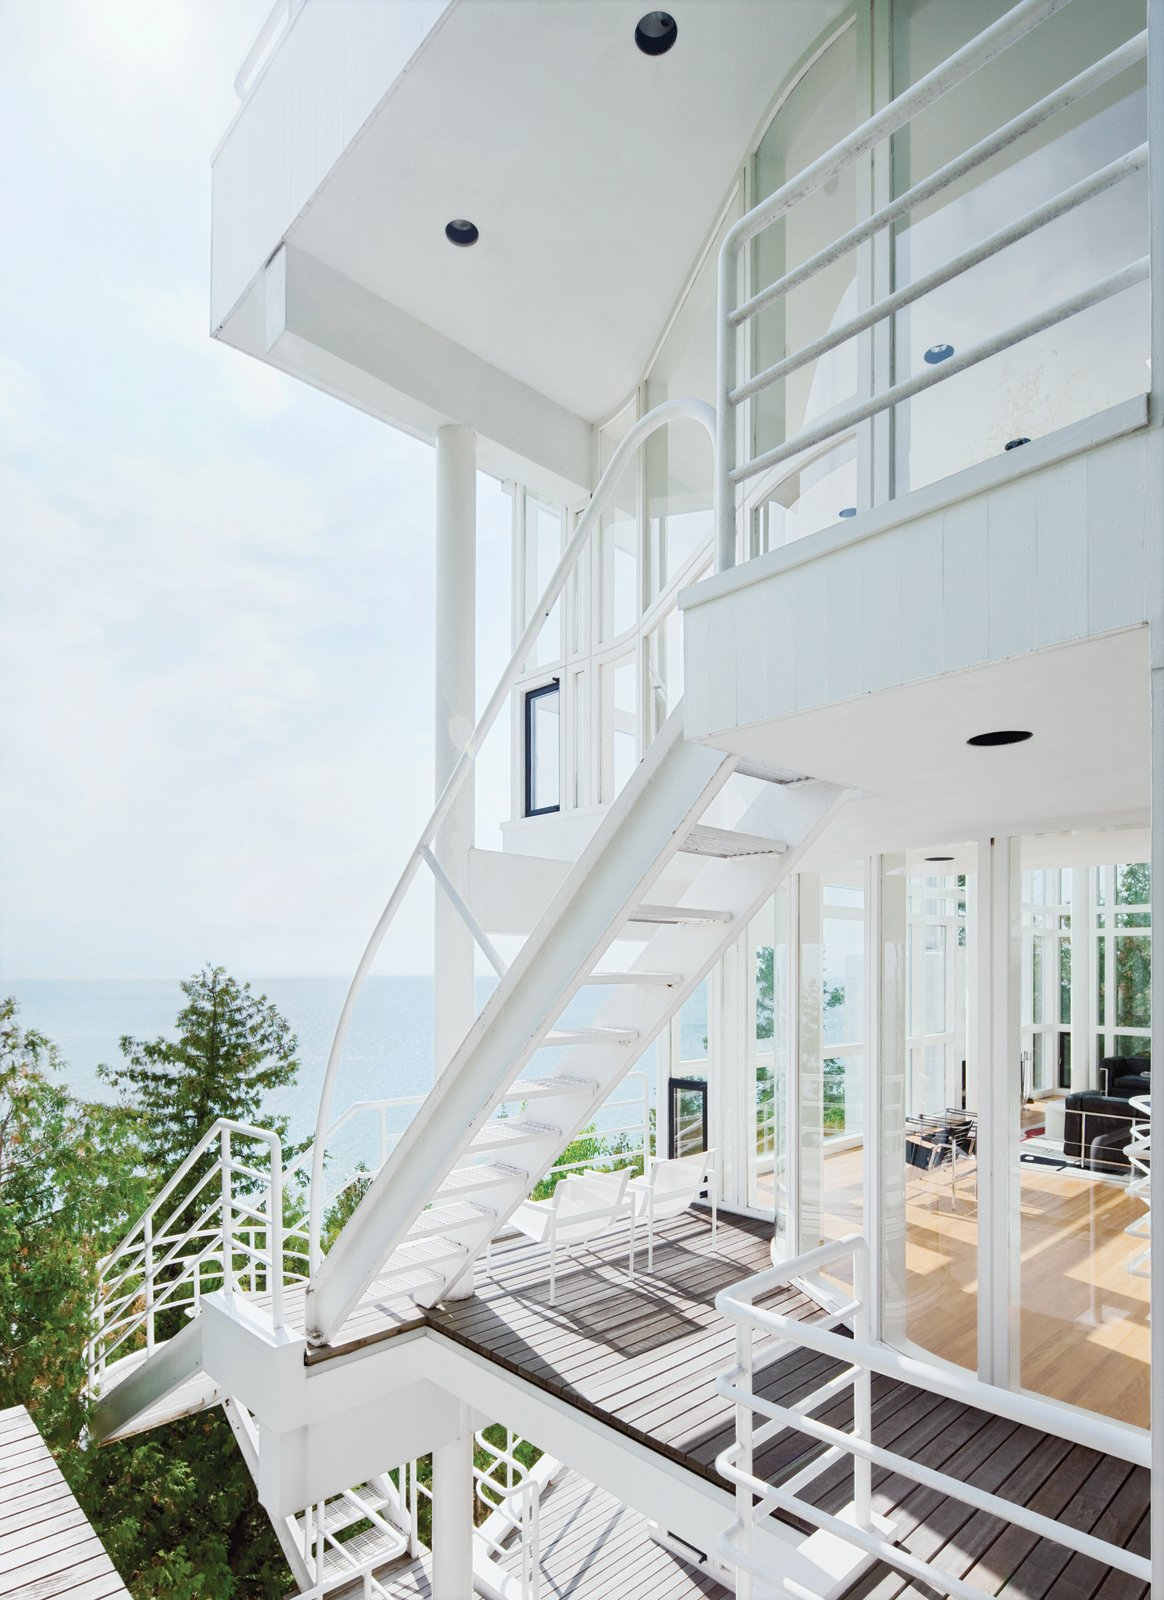 The Douglas House is a clear nod to Les Terrasses, a 1928 residence created by Le Corbusier in Garches, France. Shared elements include curved walls, spatial ambiguities, and the series of ladders and cantilevered staircases that join the levels and encourage a cascading architectural promenade.